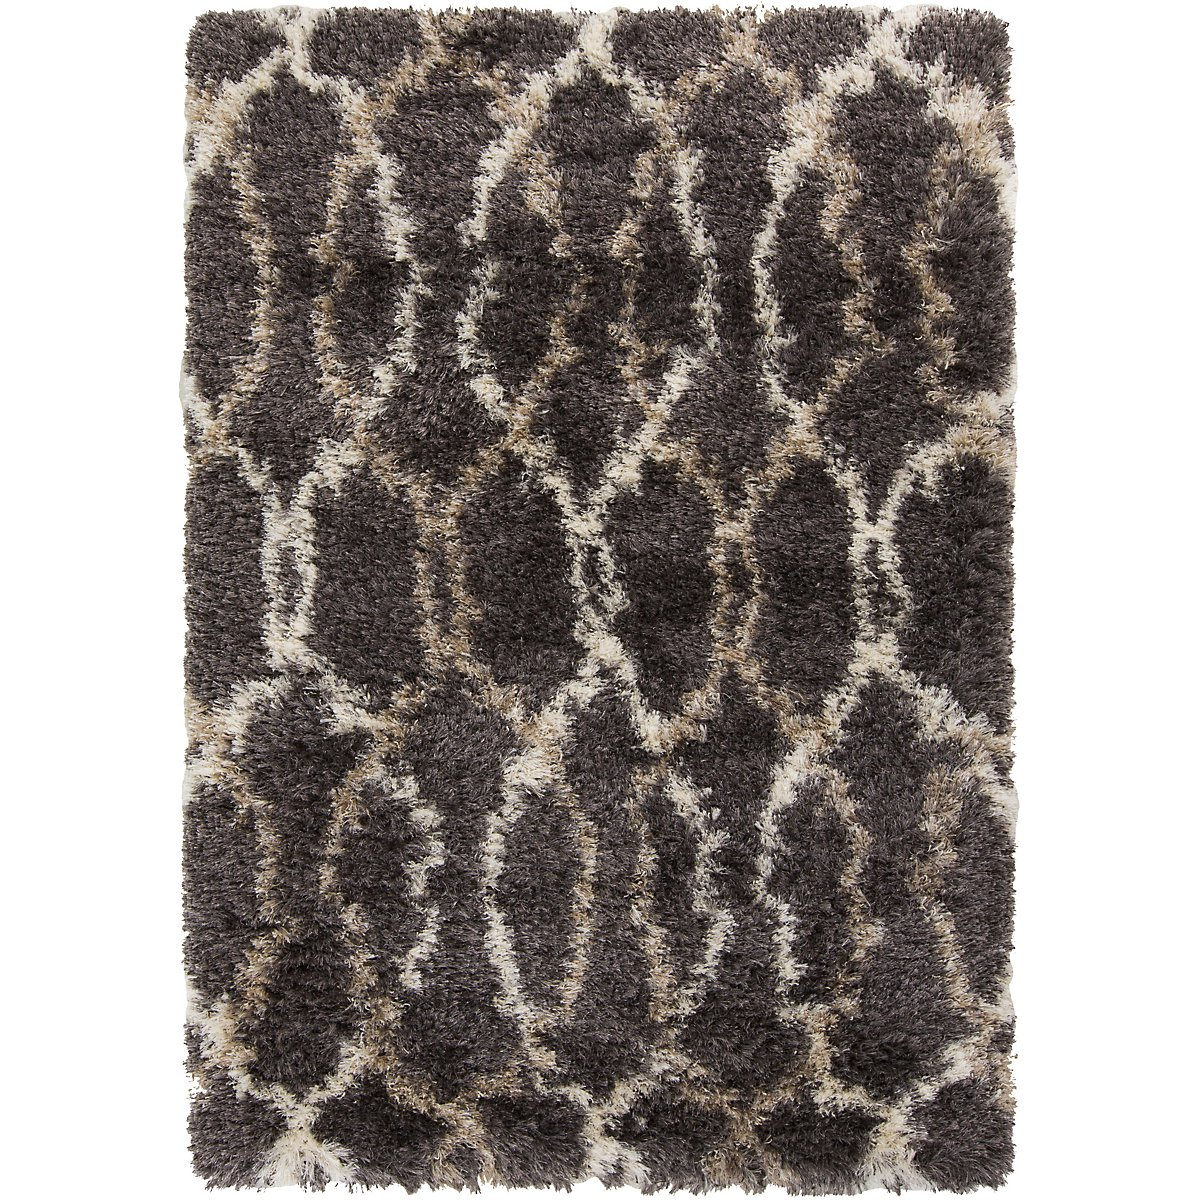 Rhapsody Dark Gray 5X8 Area Rug